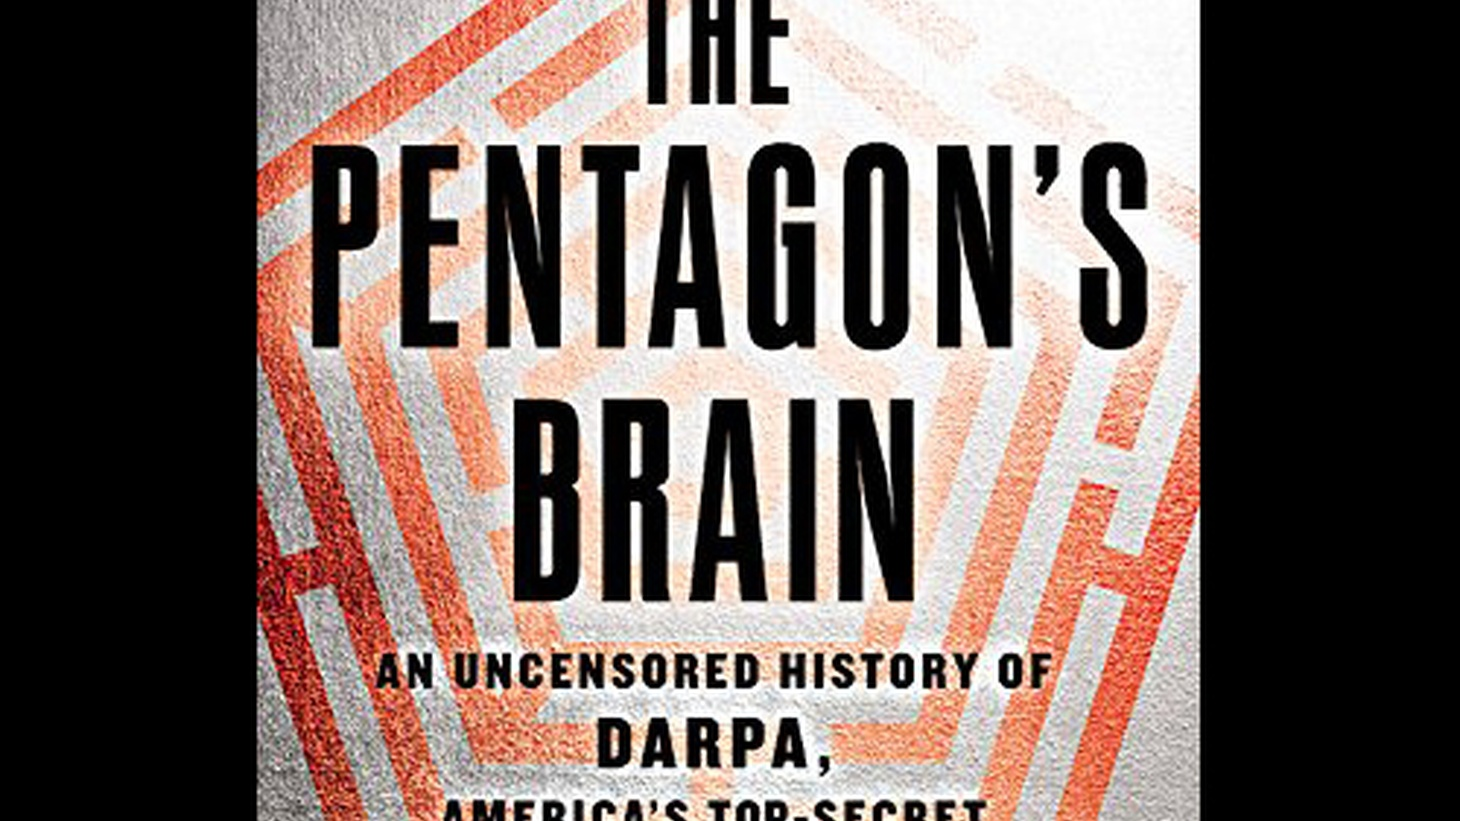 How much do you know about DARPA? That's the Defense Advanced Research Projects Agency, by the way. It's the most powerful military science agency in the world and it's also one of the most secretive and unknown. Until now.